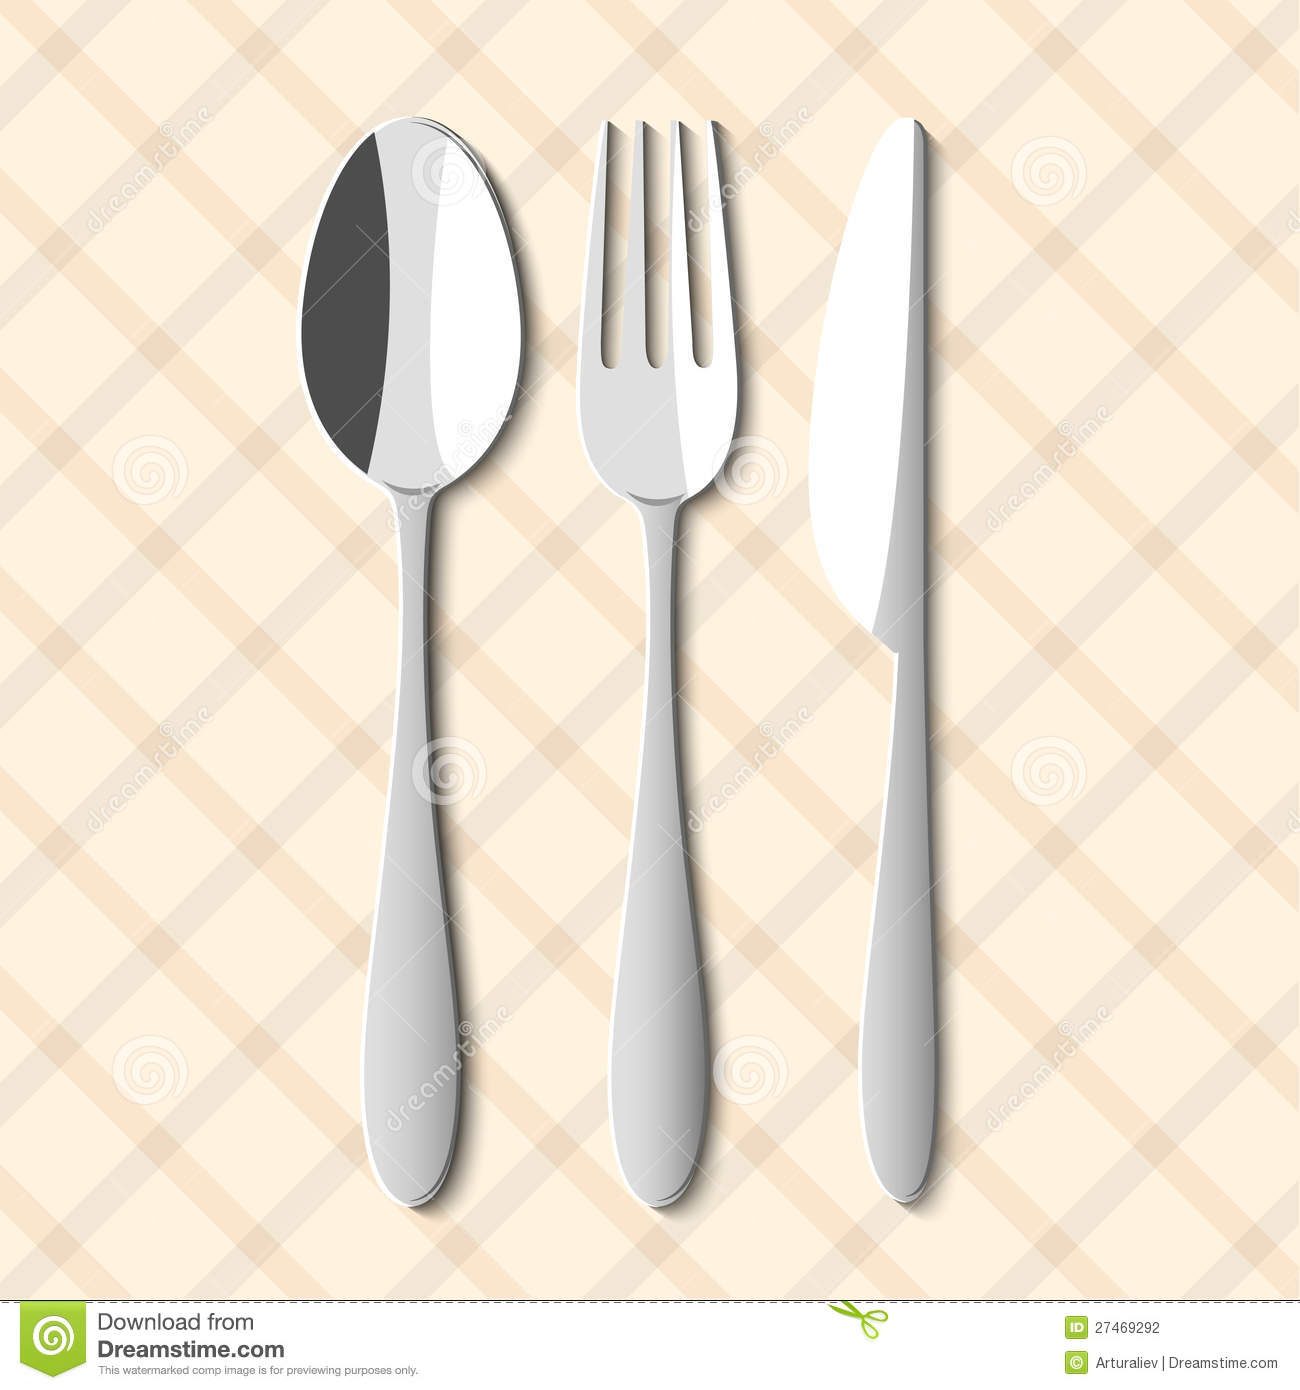 how to clean knifes forks and spoons